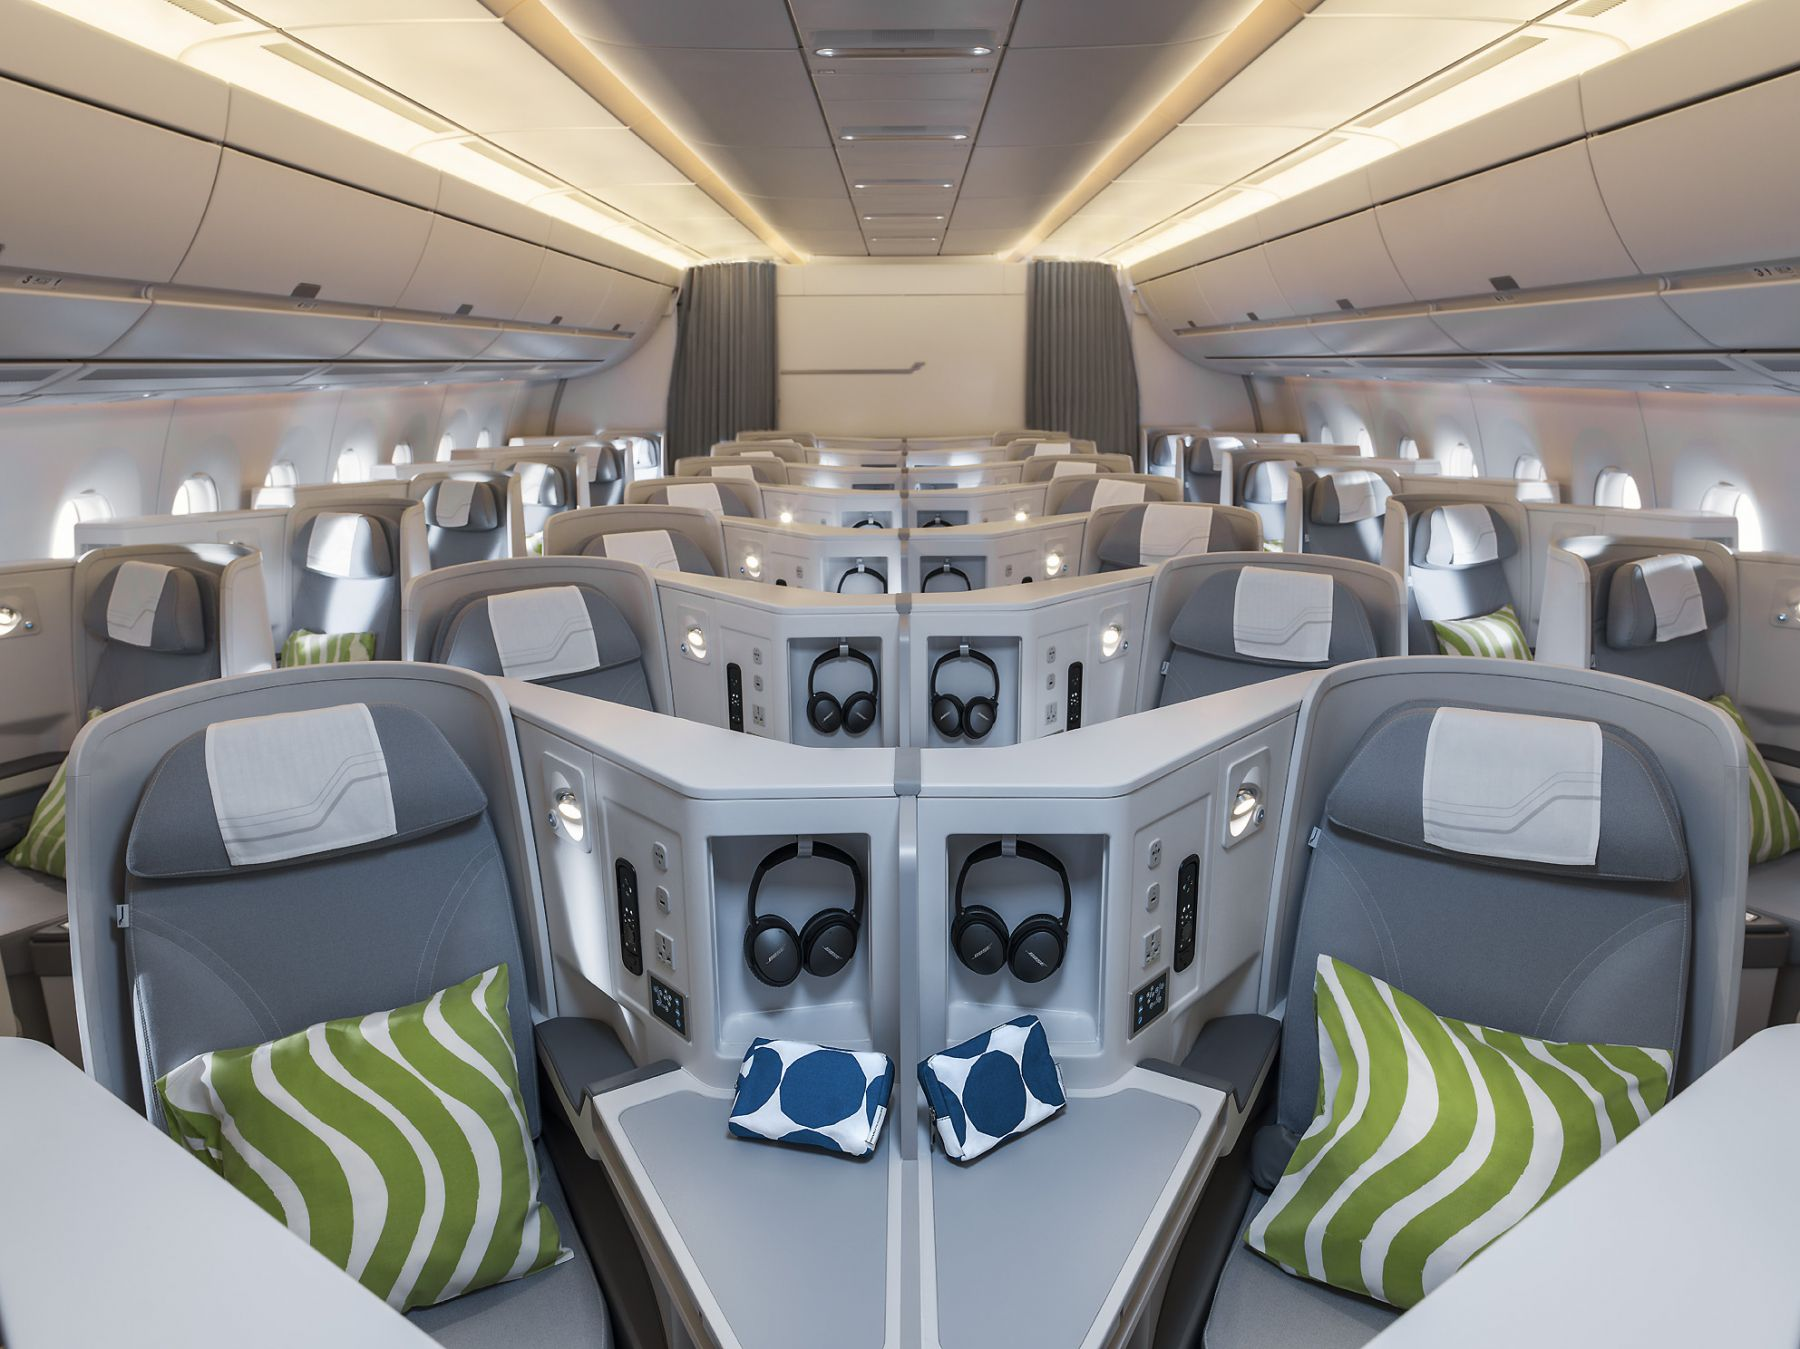 Finnair A350 business class cabin, general view warm